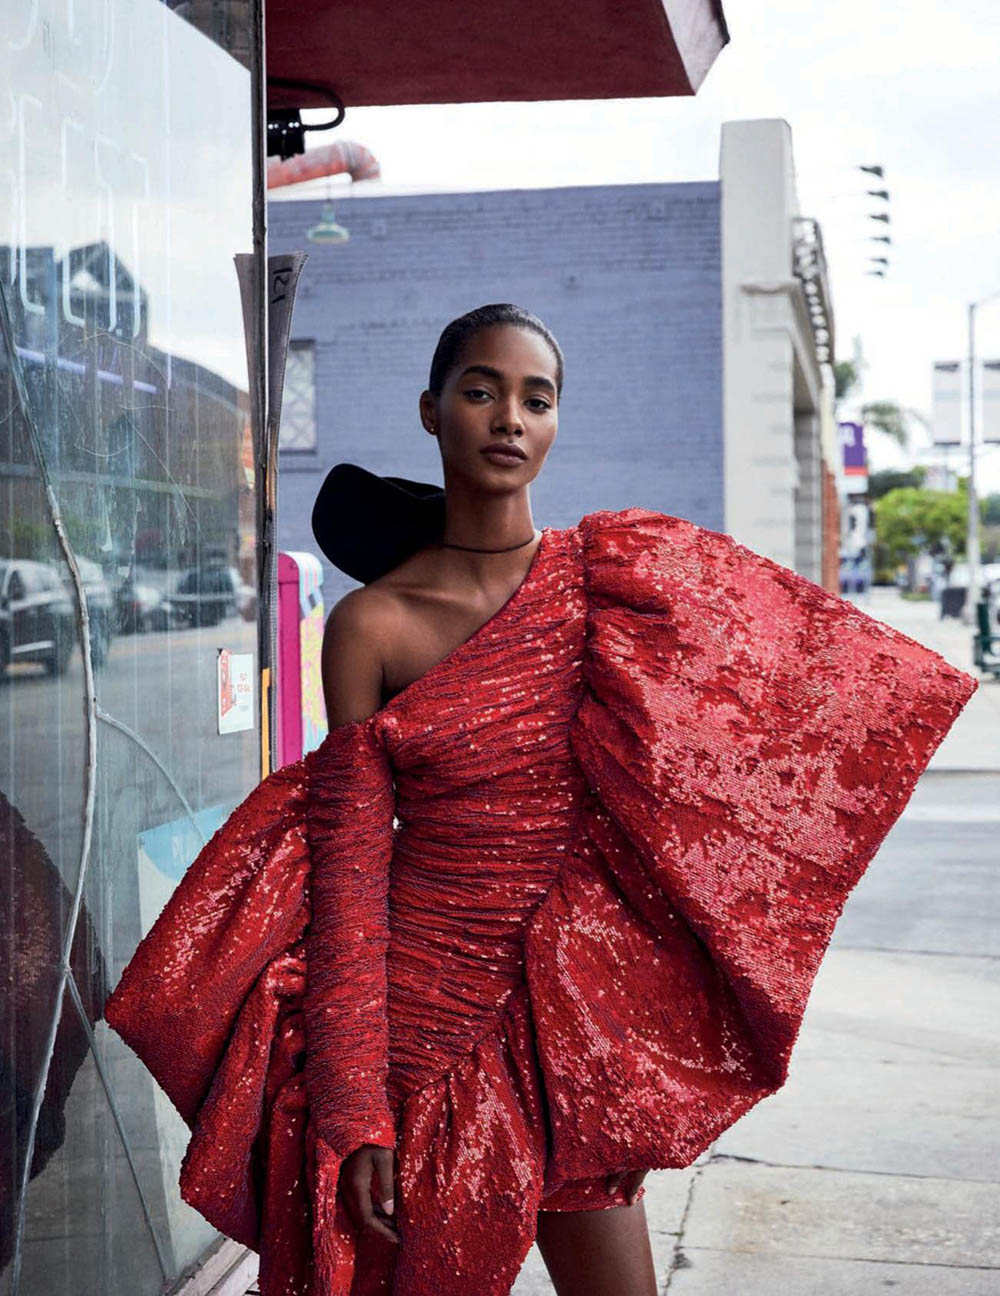 Tami Williams by Alvaro Beamud for Vogue Spain September 2019